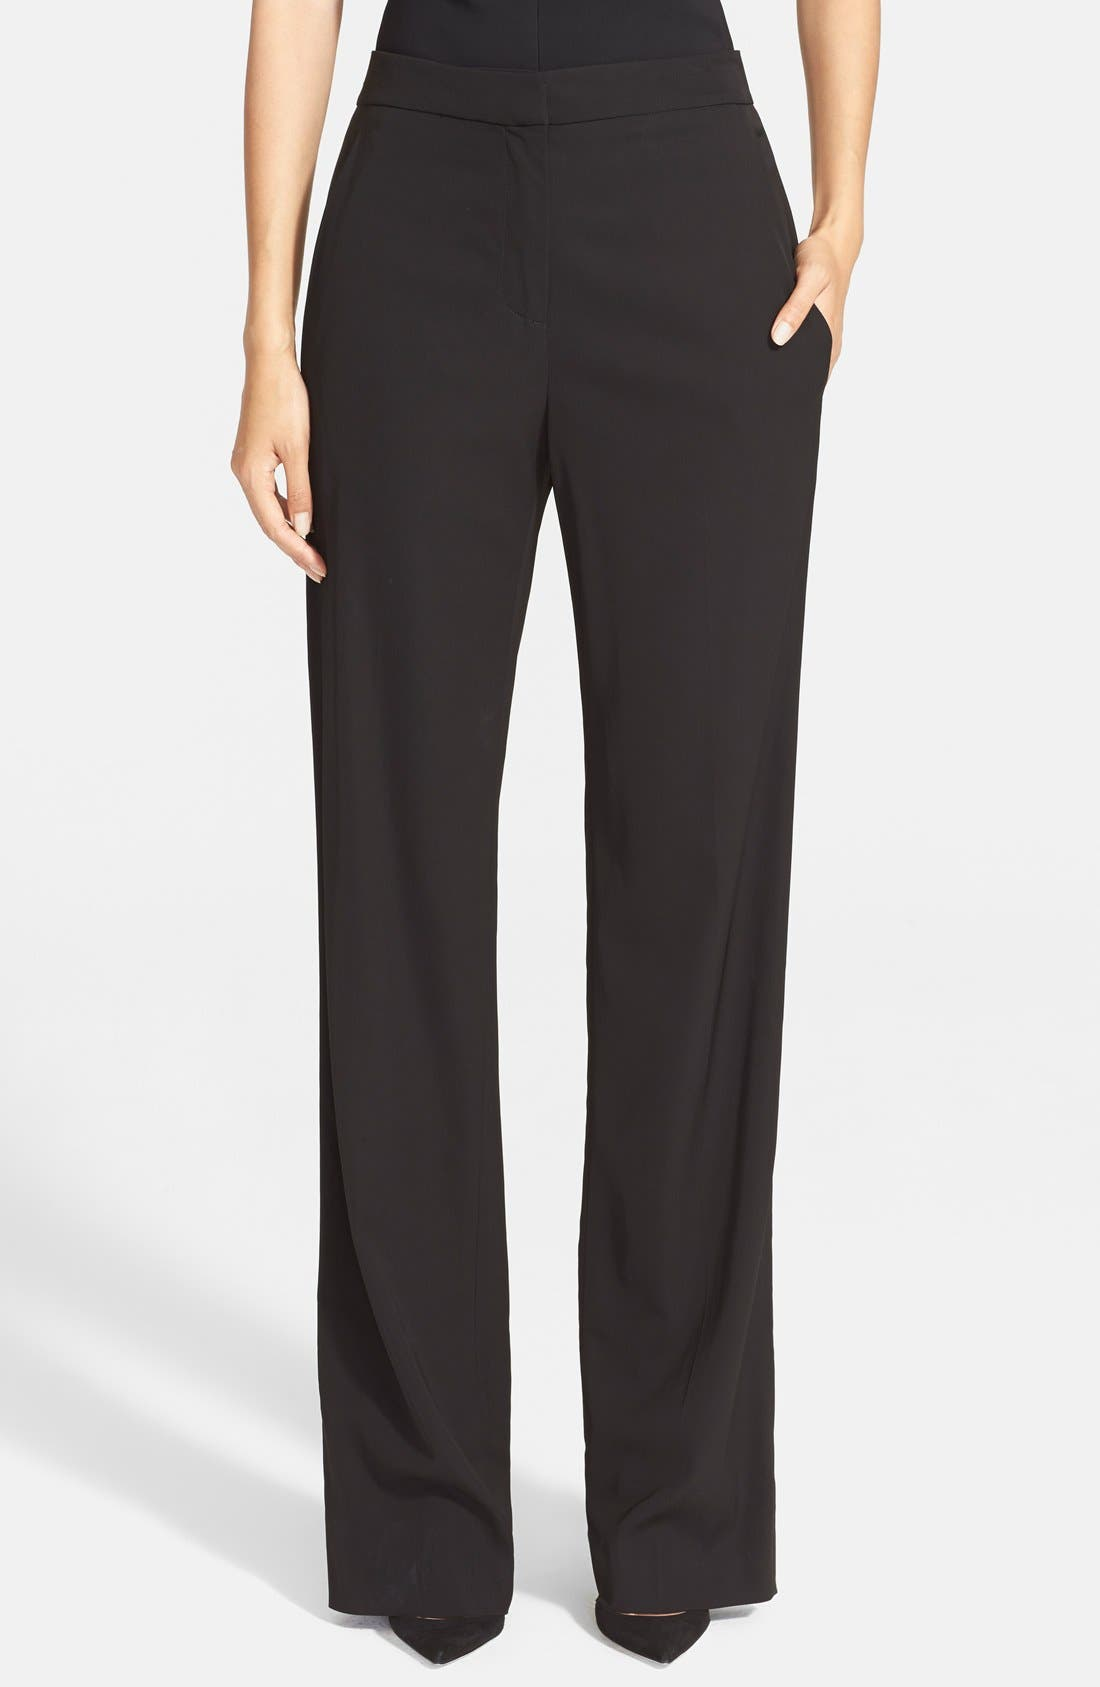 Alternate Image 1 Selected - A.L.C. 'Oliver' Crepe Pants